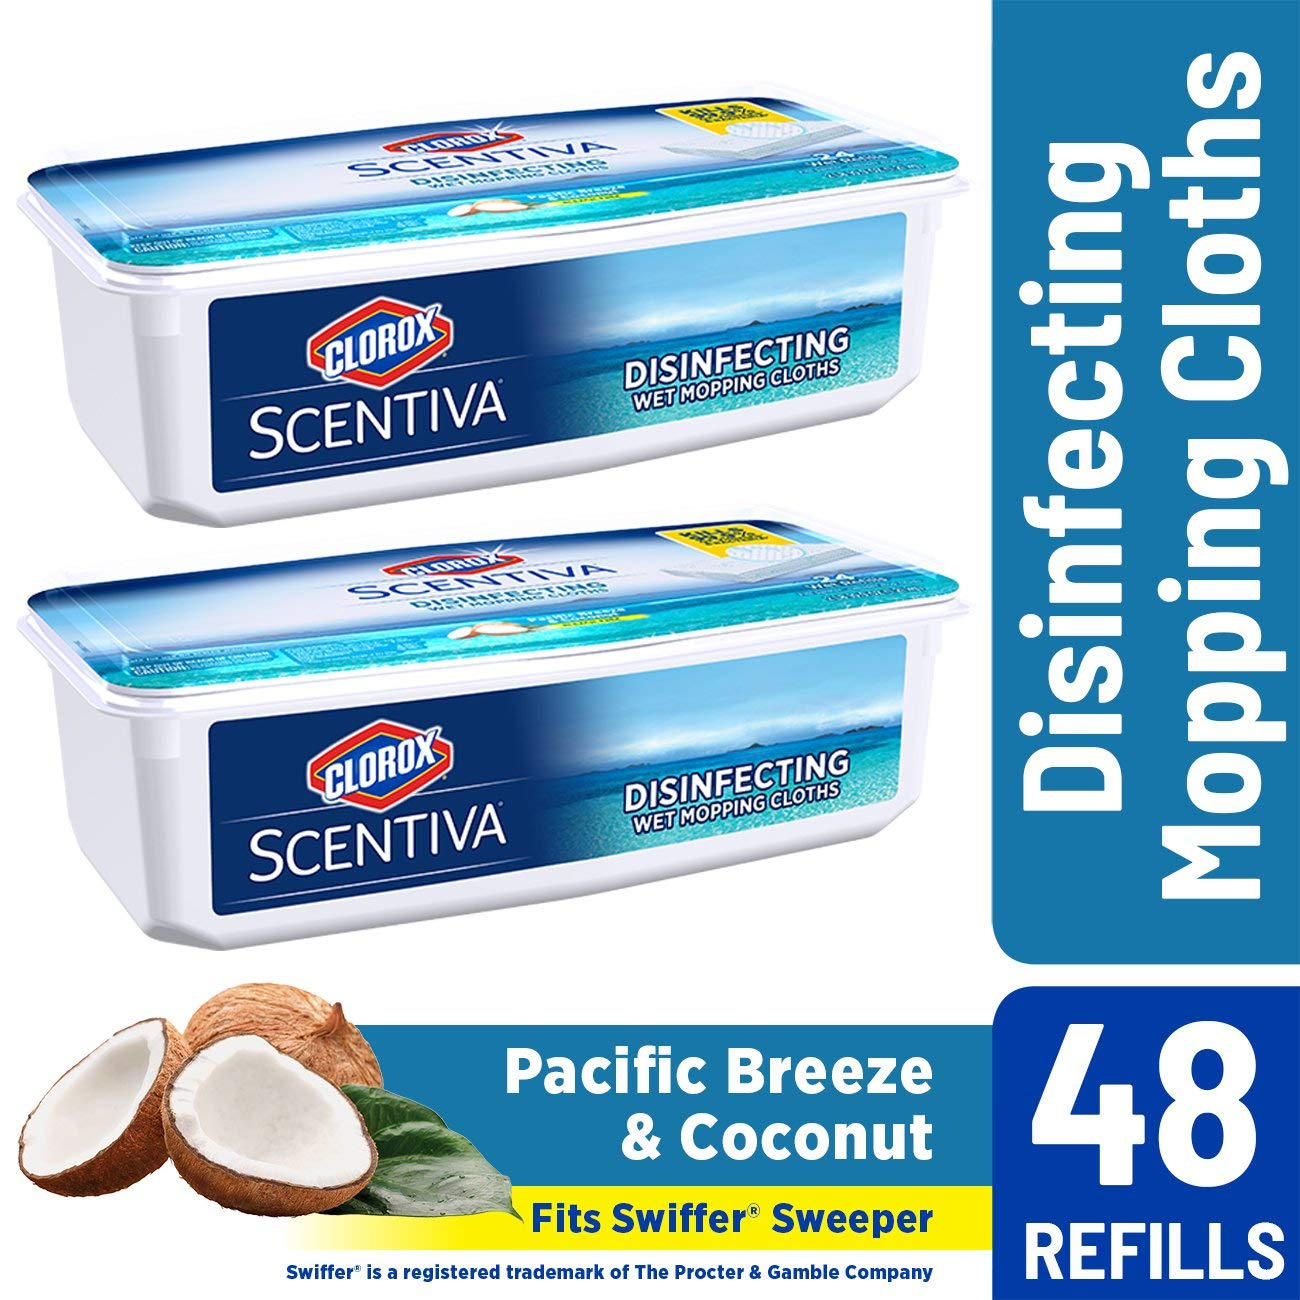 Clorox Scentiva Disinfecting Wet Mopping Pad Refills for Floor Cleaning, Pacific Breeze & Coconut, 48 Count